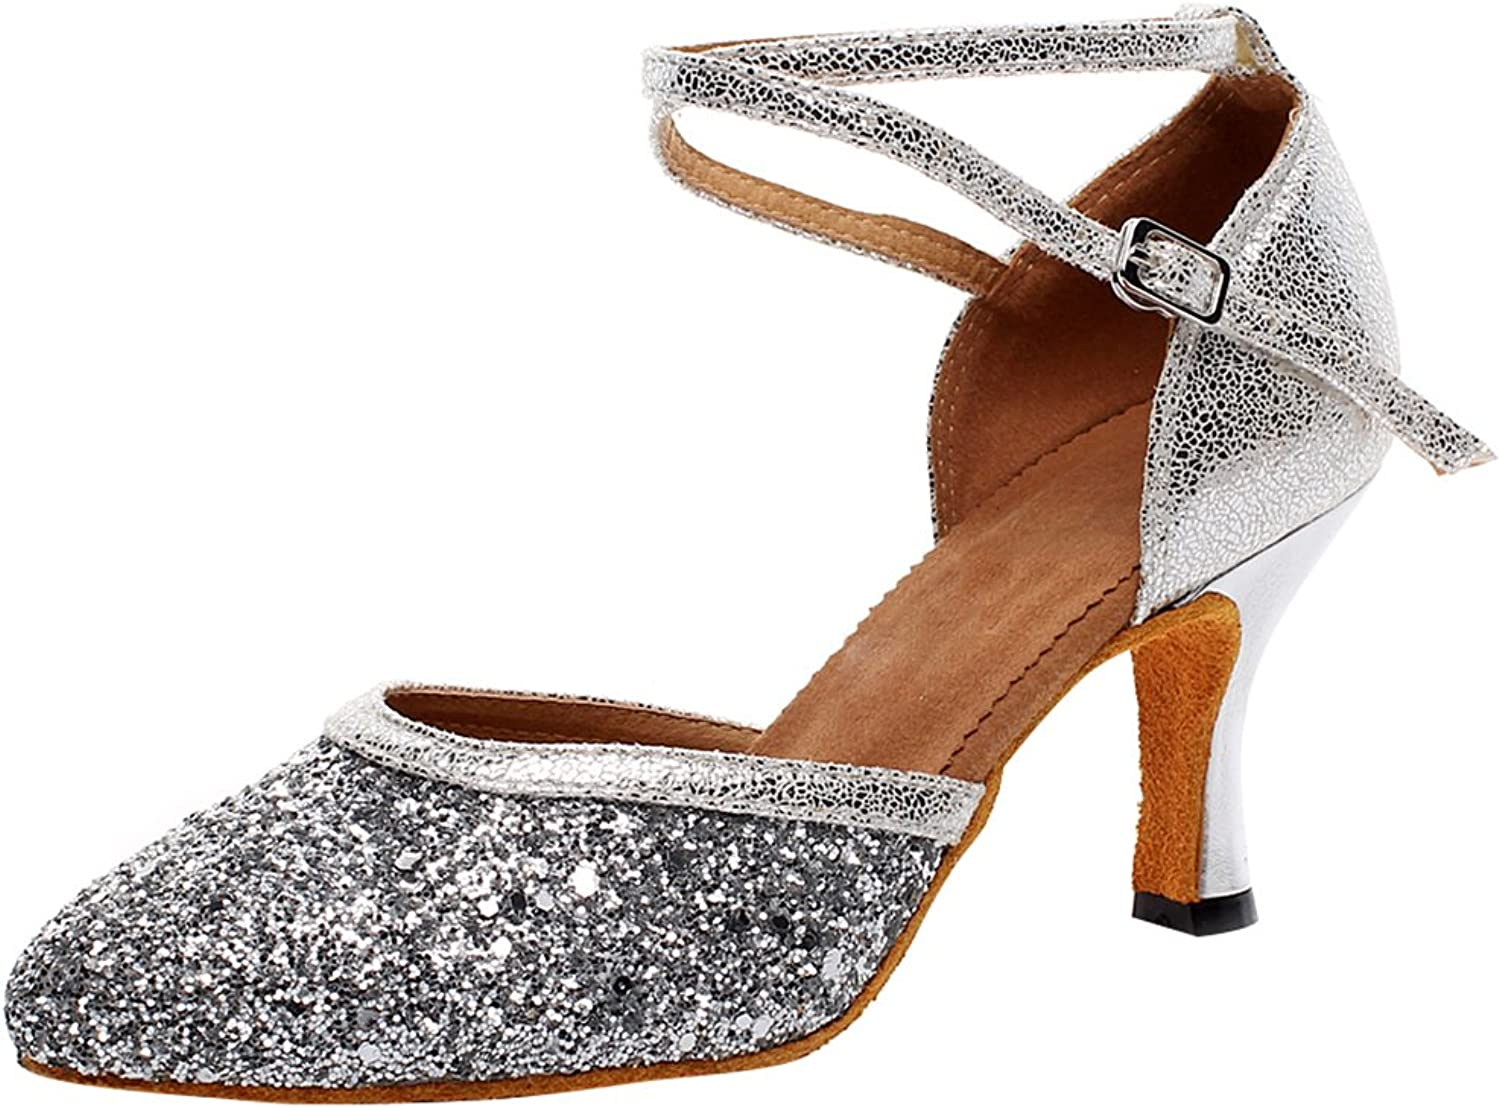 ABBY Products Womens Practice Latin Tango Chacha Professional Dance shoes 2 in Closed Toe7122 Silver(3.5IN) US Size3